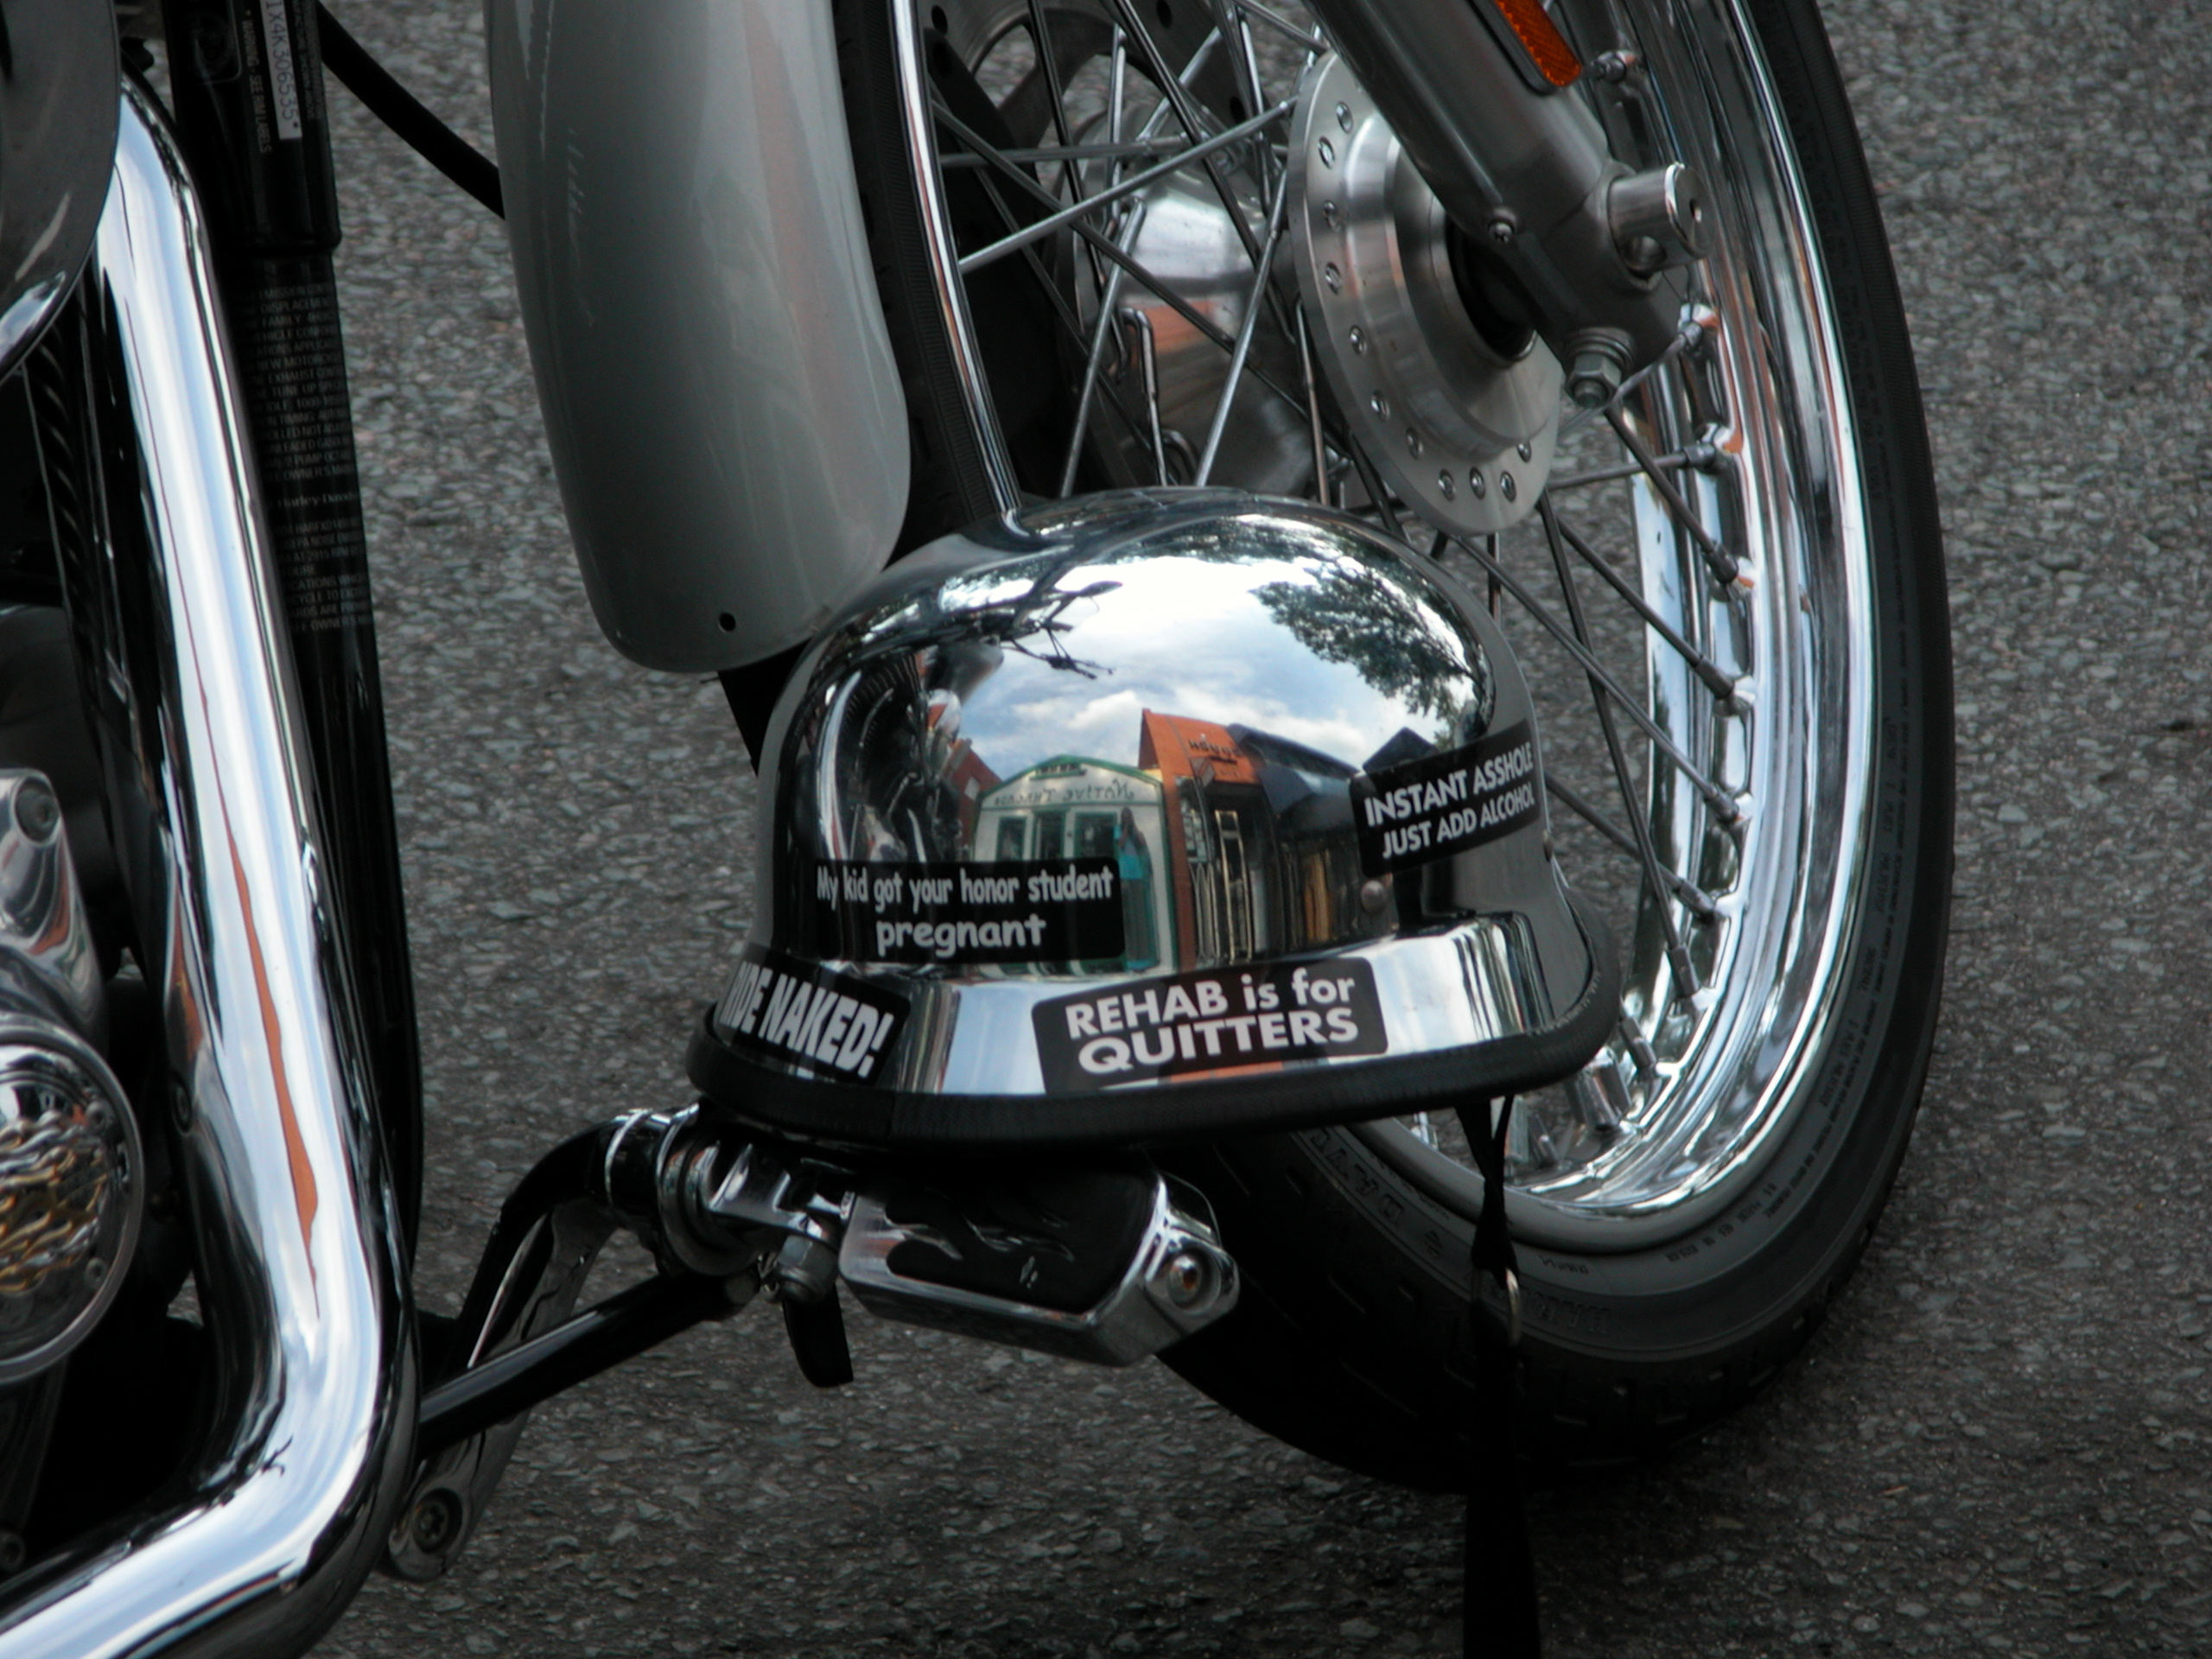 Helmet sticker